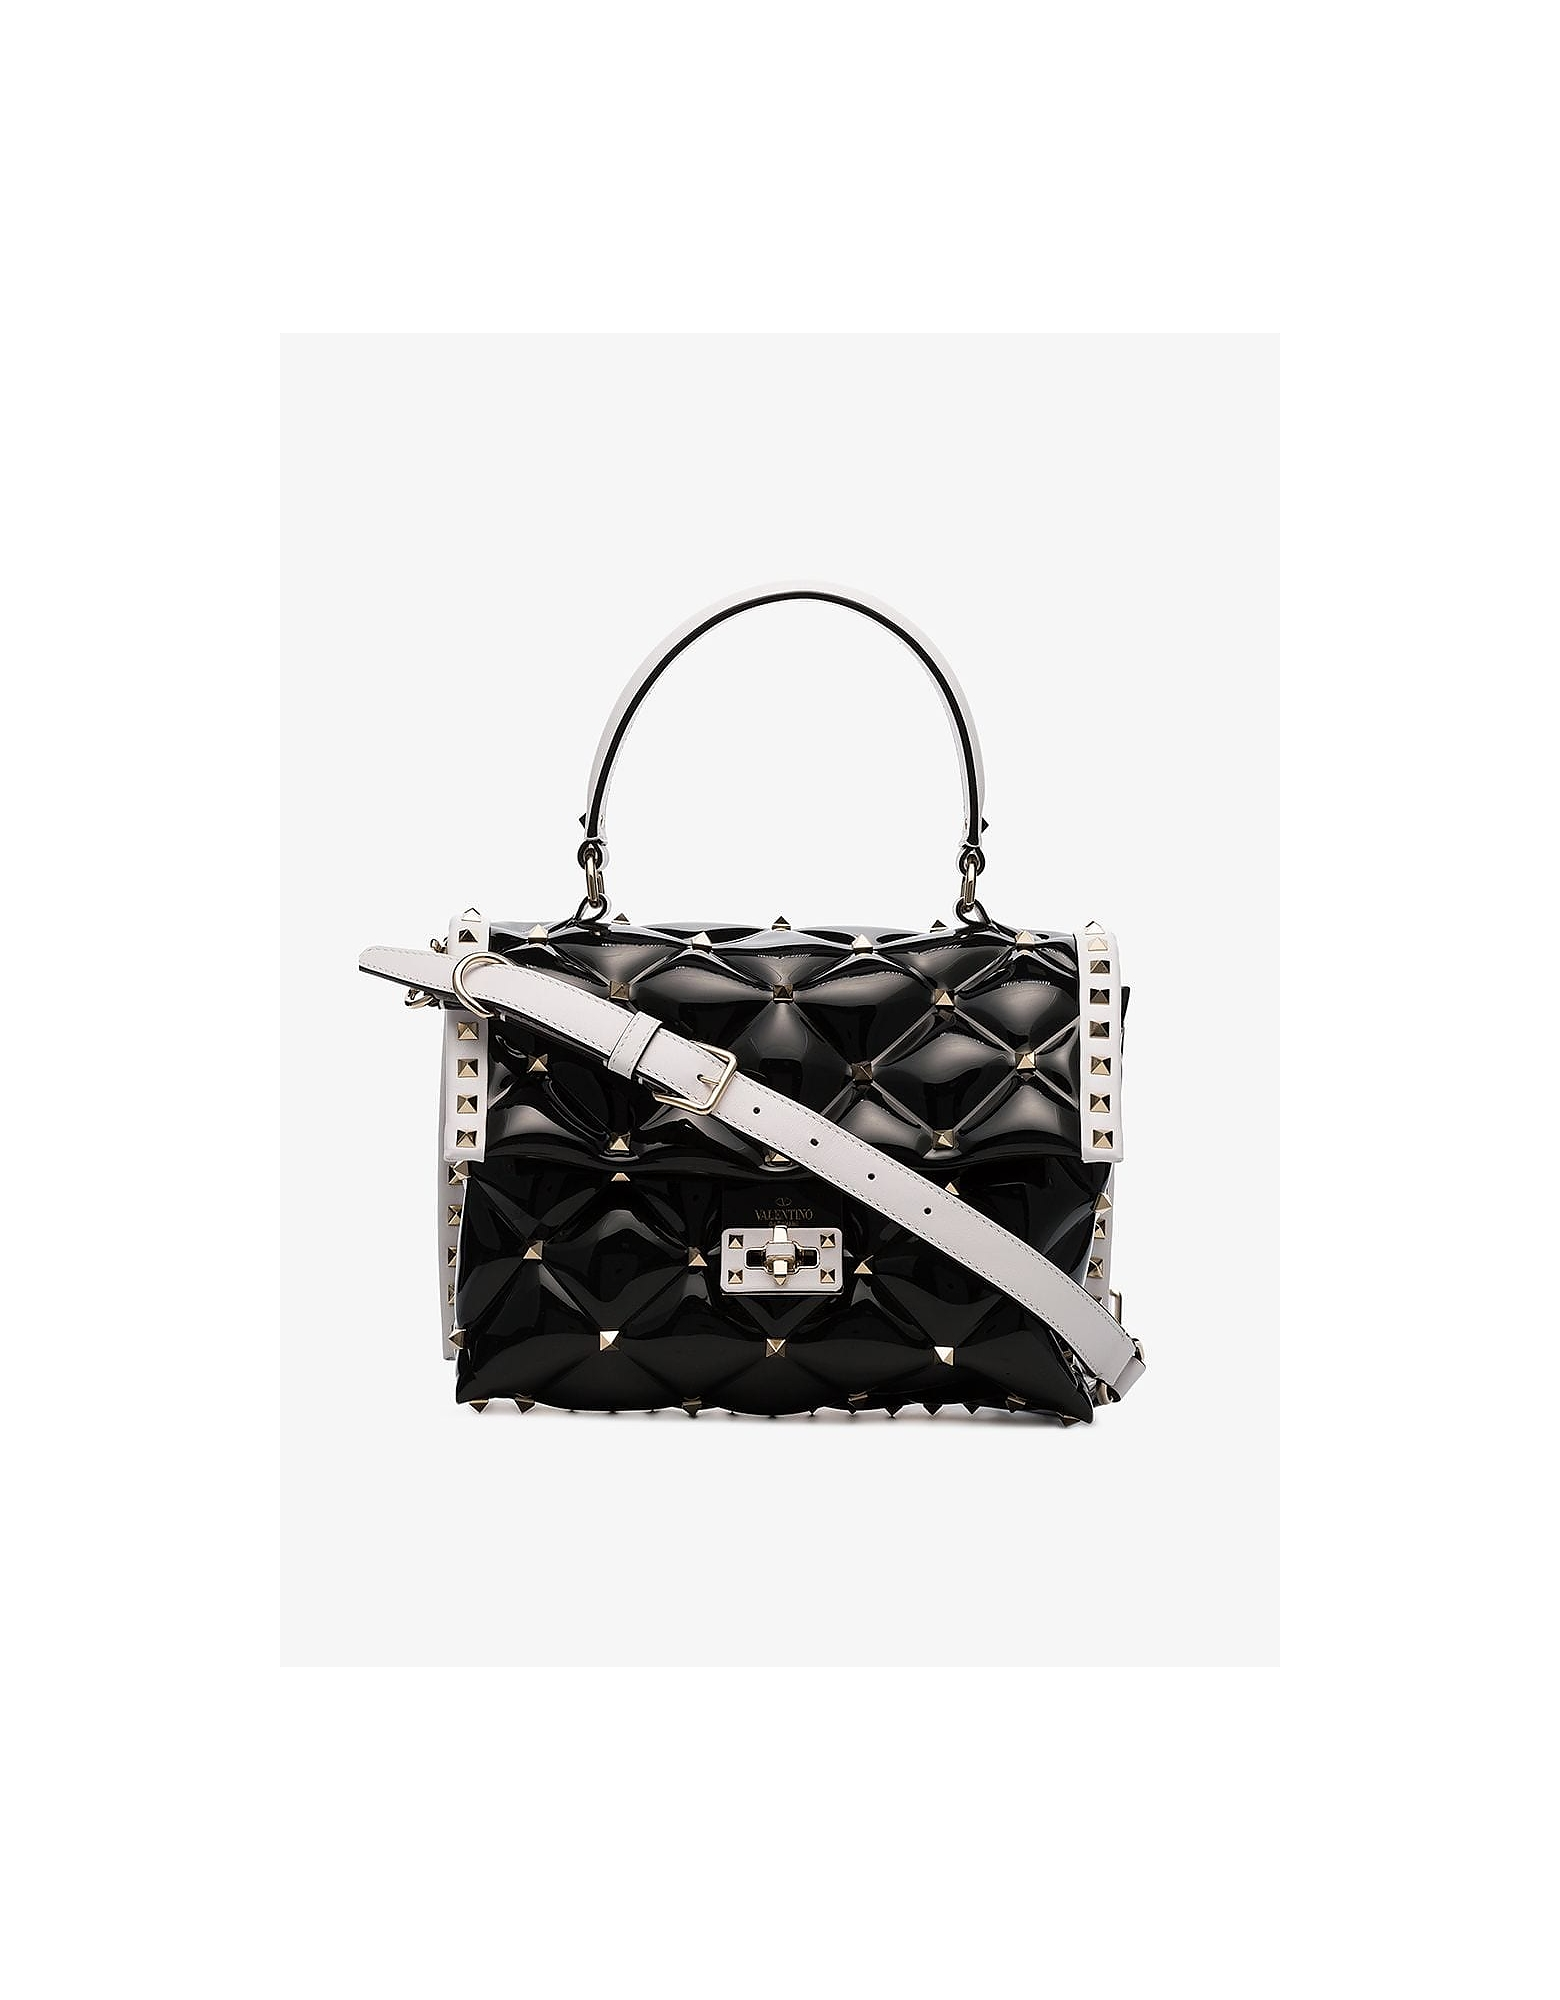 Valentino Designer Handbags, Black and White Candystud PVC Shoulder Bag